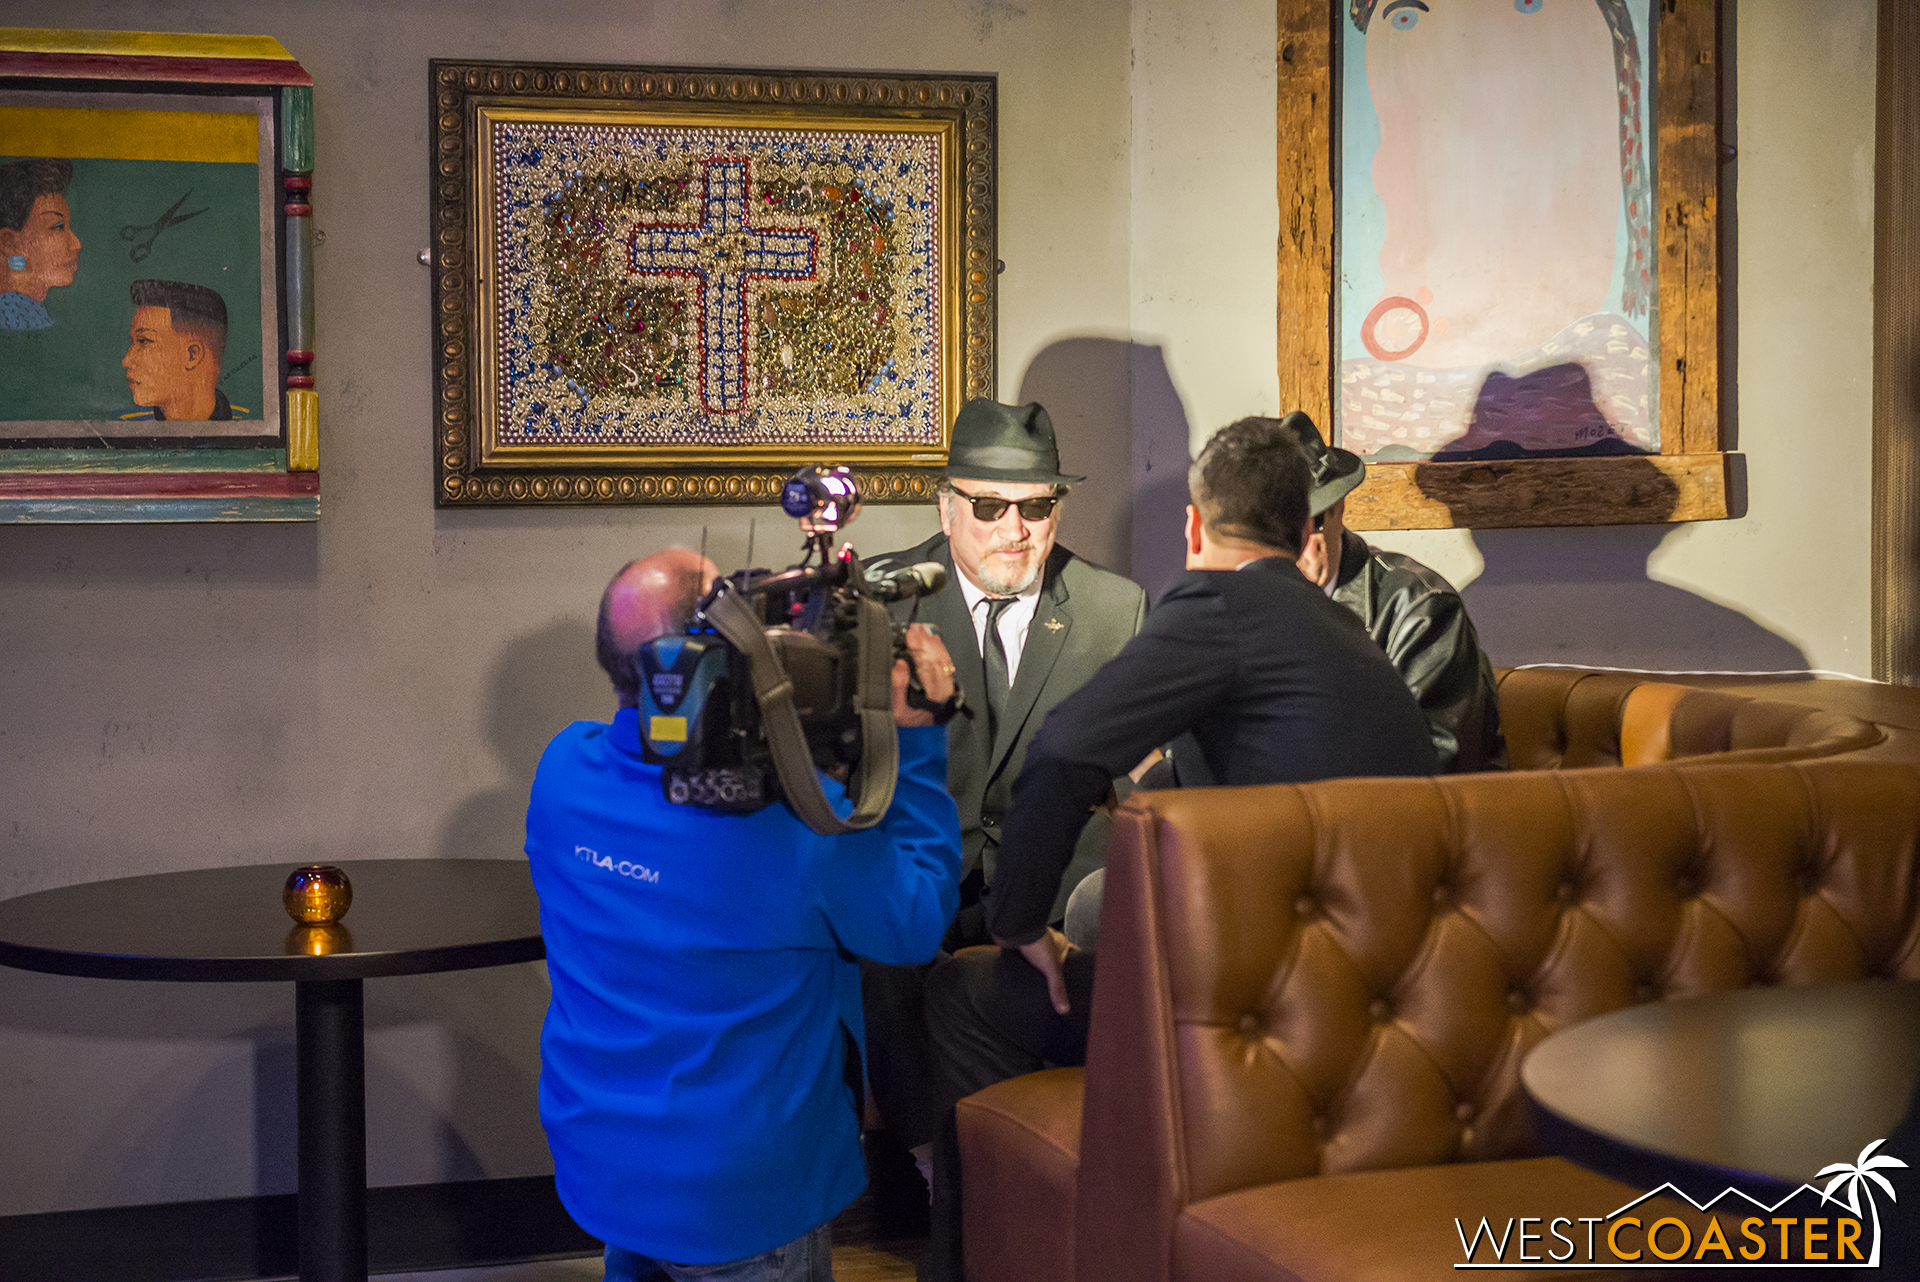 The Blues Brothers in interview.